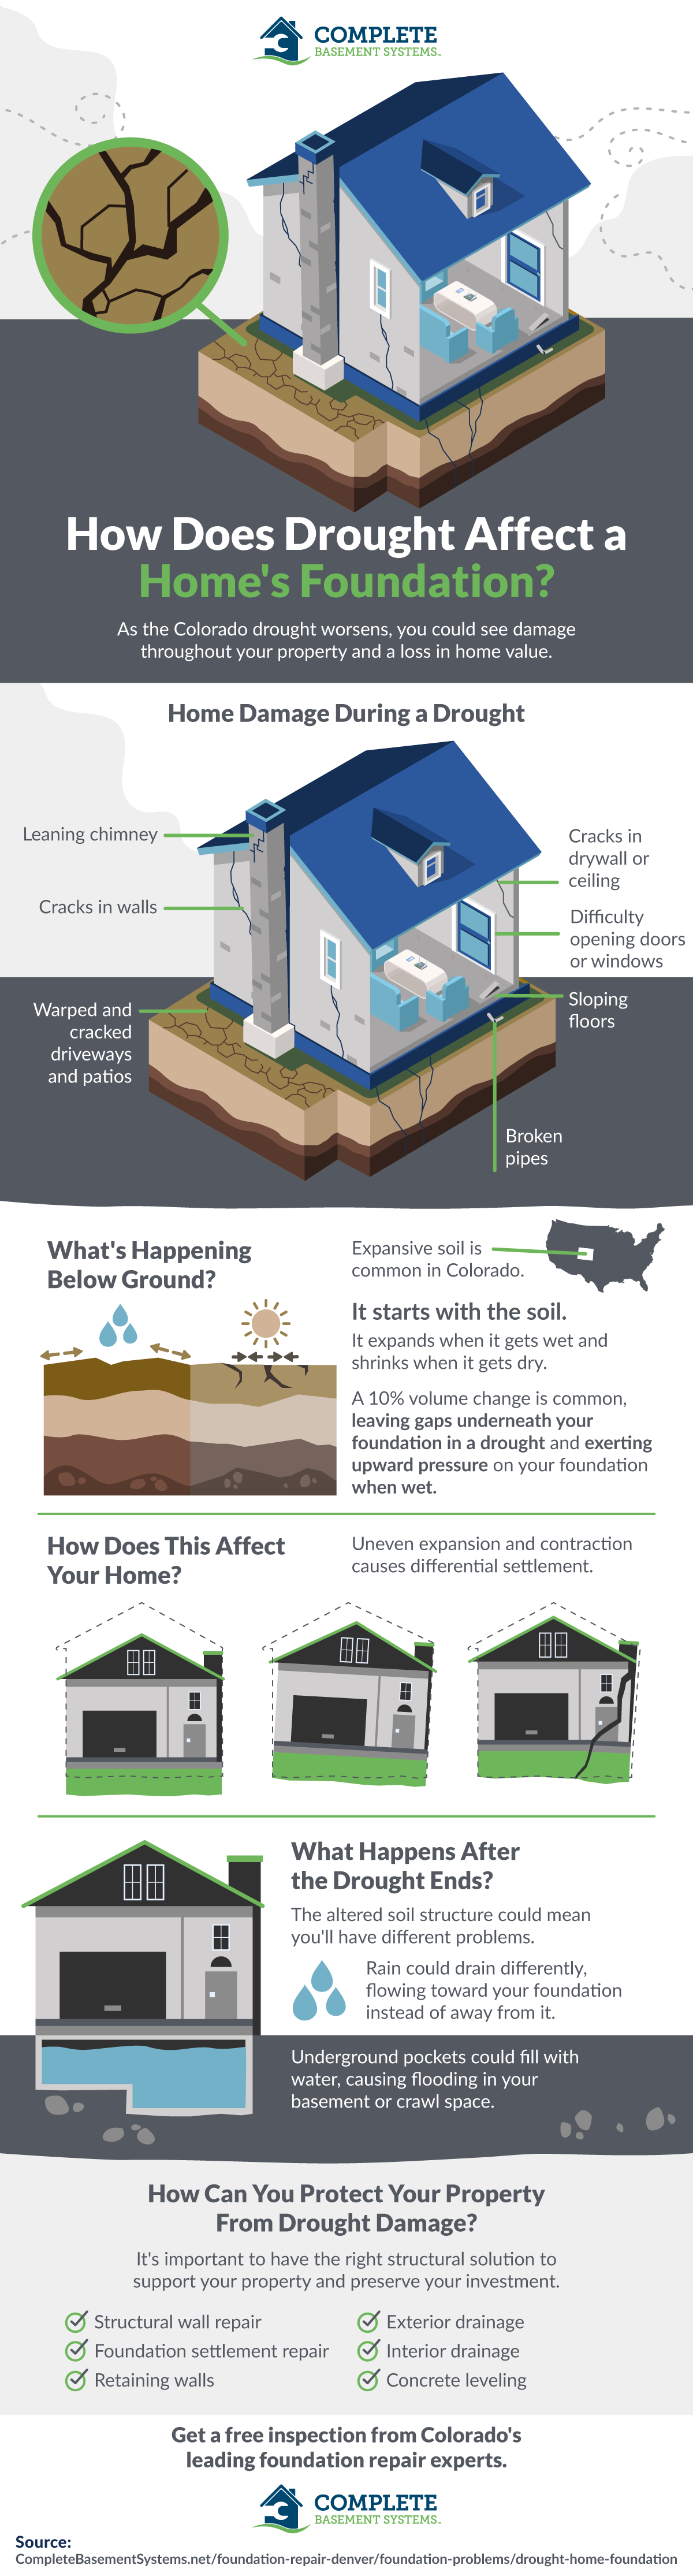 How Does Drought Affect a Home's Foundation? #infographic